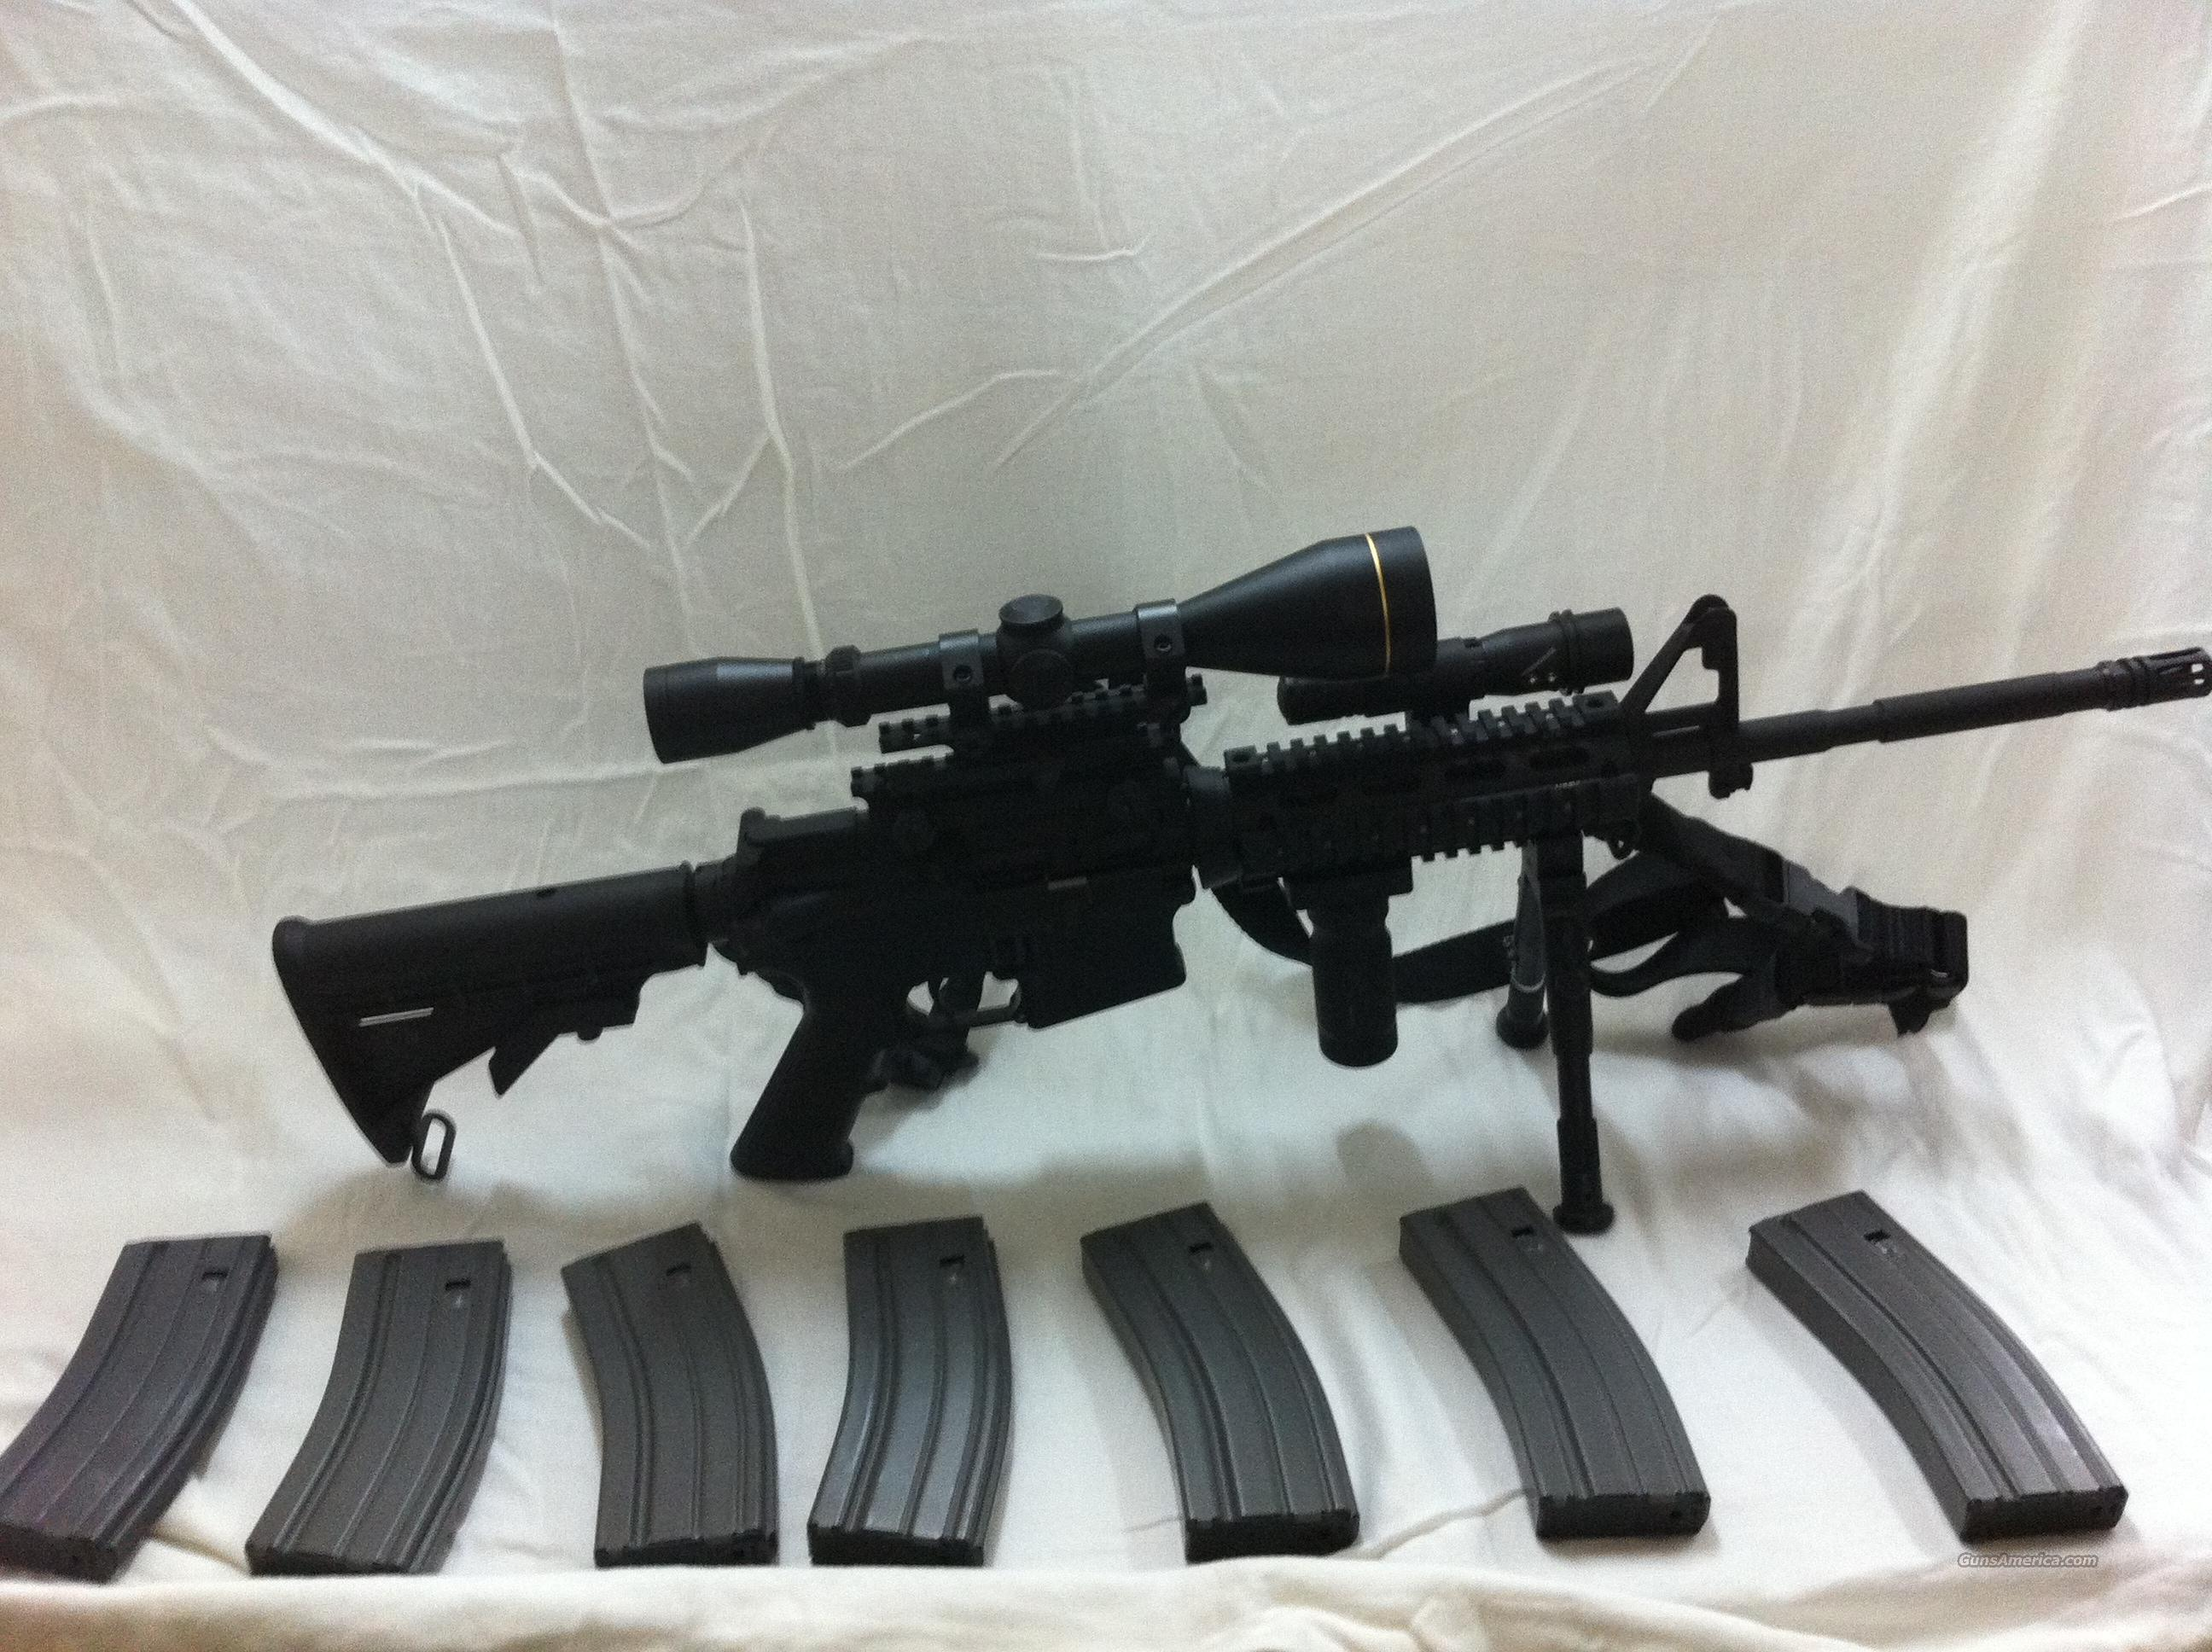 Bushmaster AR-15 XM15-E2S 223 556 5 56 Tactial Assault Rifle Package